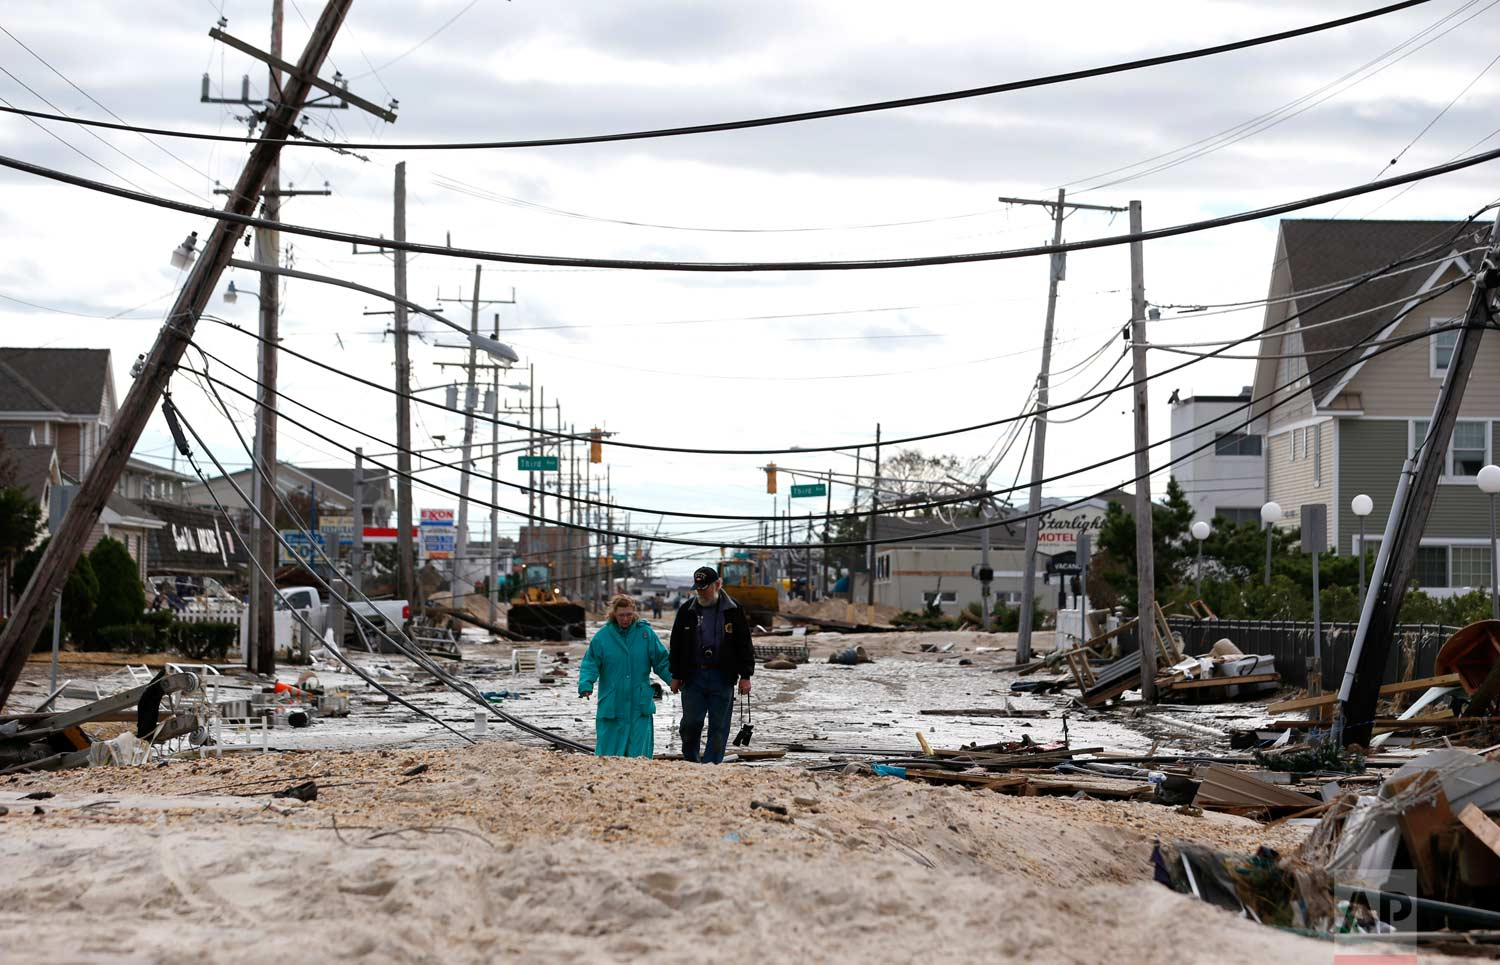 Robert Bryce, right, walks with his wife, Marcia Bryce, as destruction from superstorm Sandy is seen on Route 35 in Seaside Heights, N.J., Wednesday, Oct. 31, 2012. Sandy, the storm that made landfall Monday, caused multiple fatalities, halted mass transit and cut power to more than 6 million homes and businesses. (AP Photo/Julio Cortez)